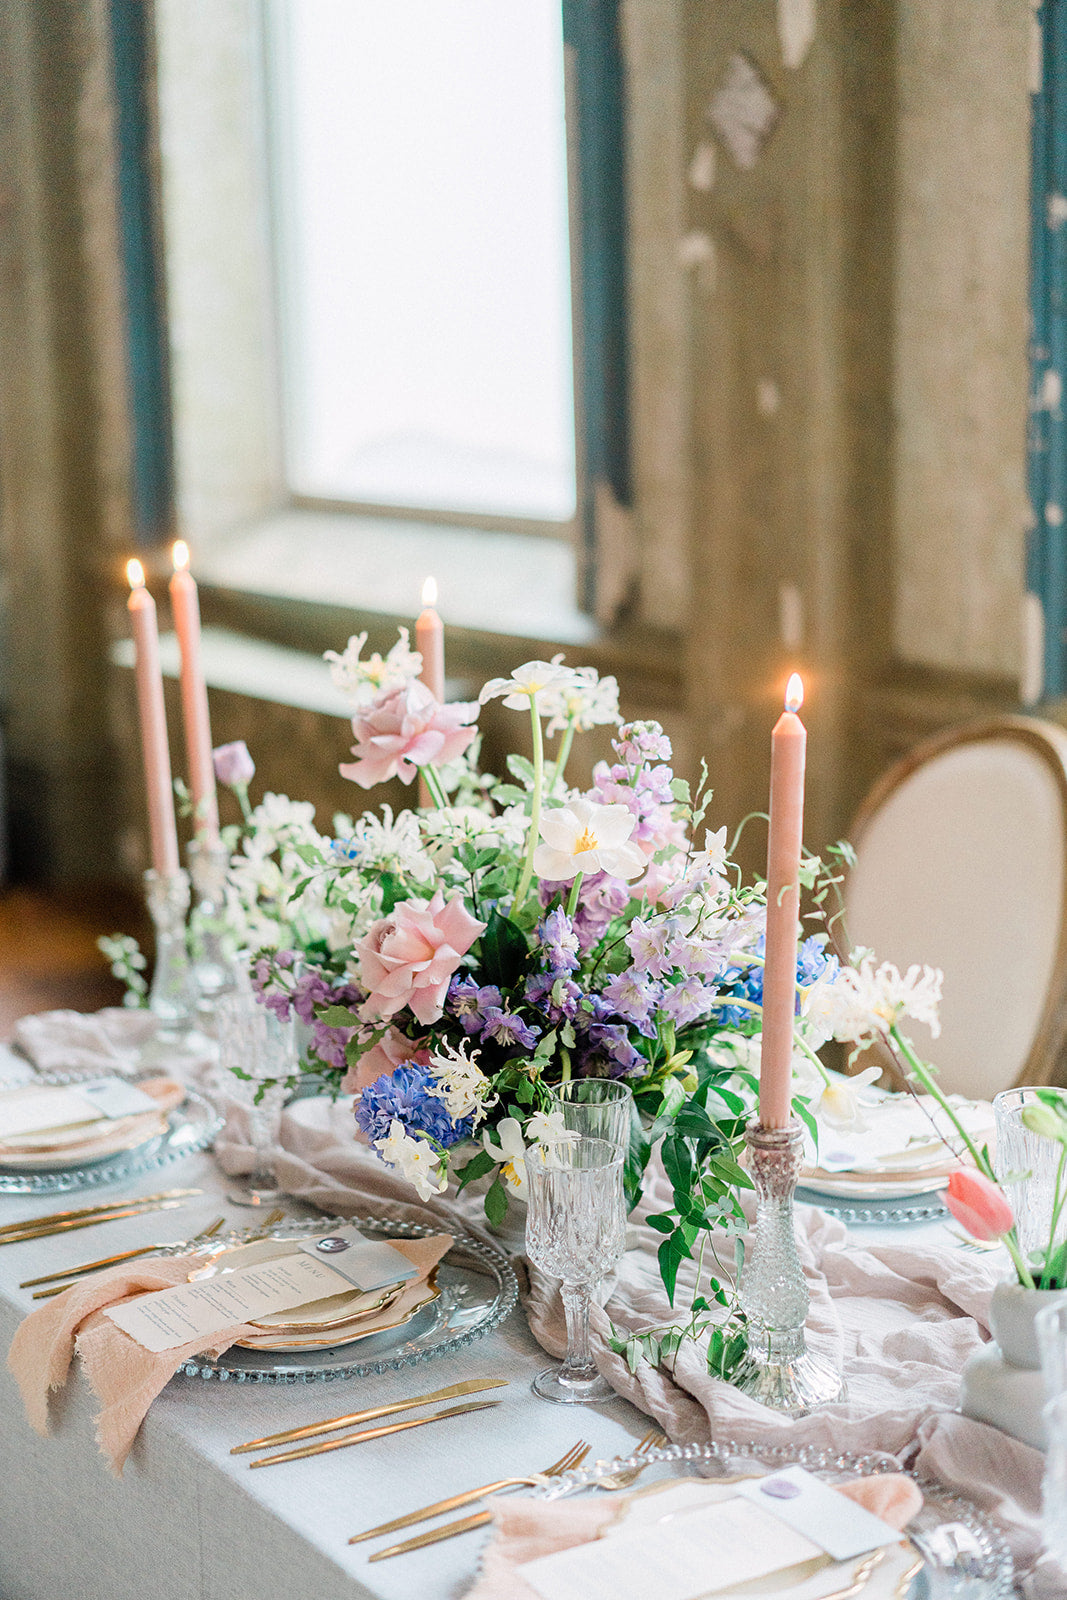 table setting blush pink napkins grey table runners